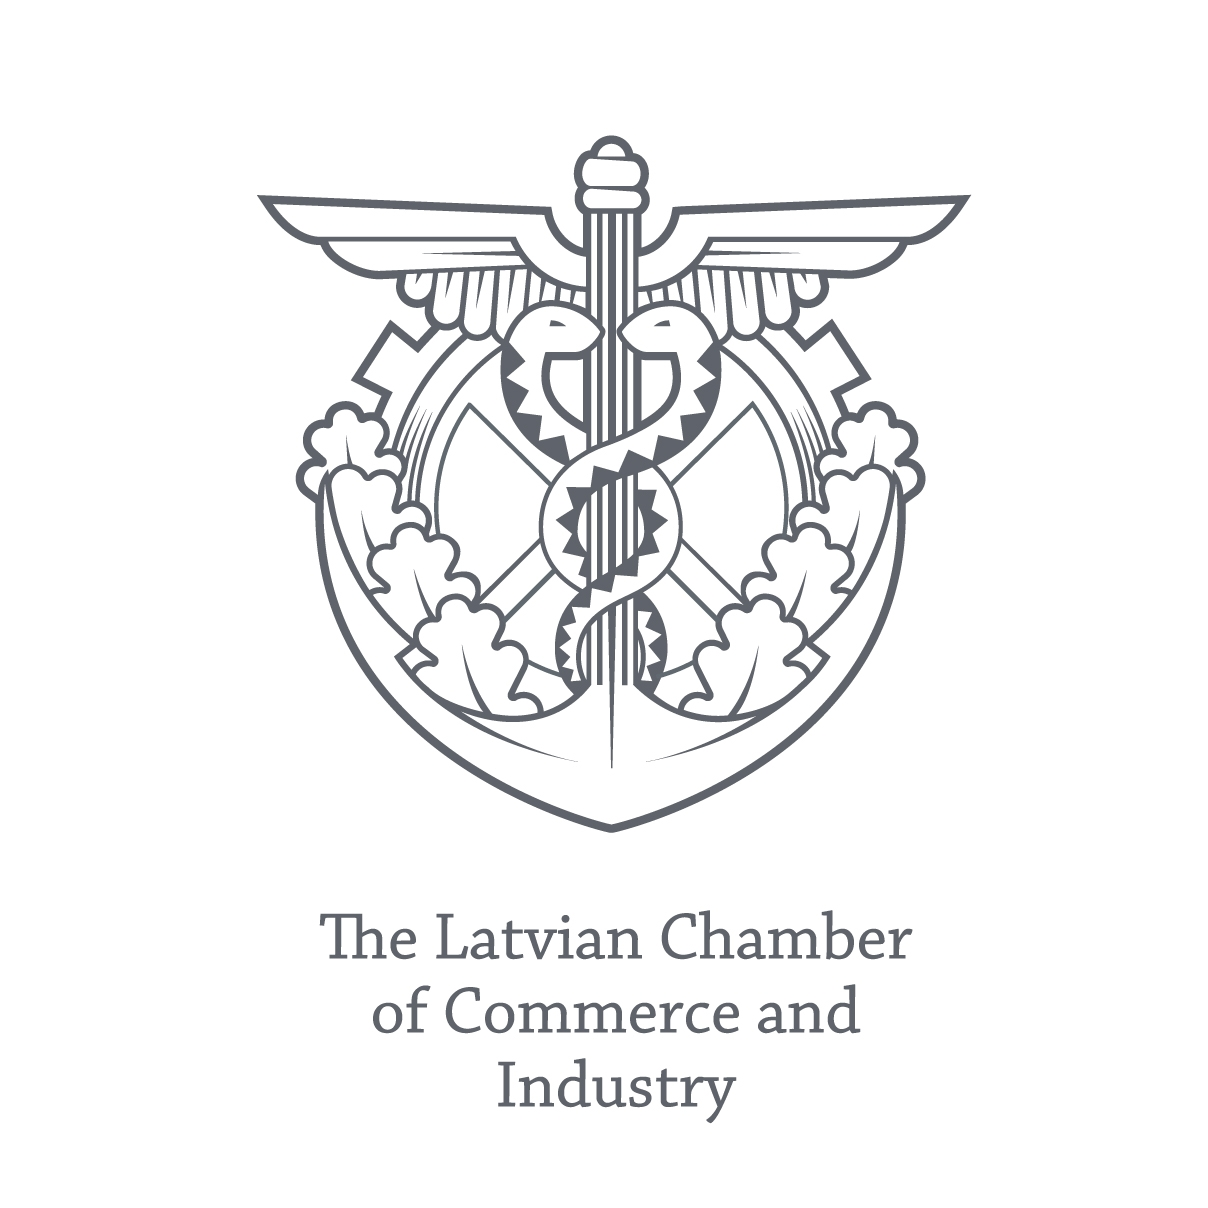 The Latvian chamber of commerce and industry logo.